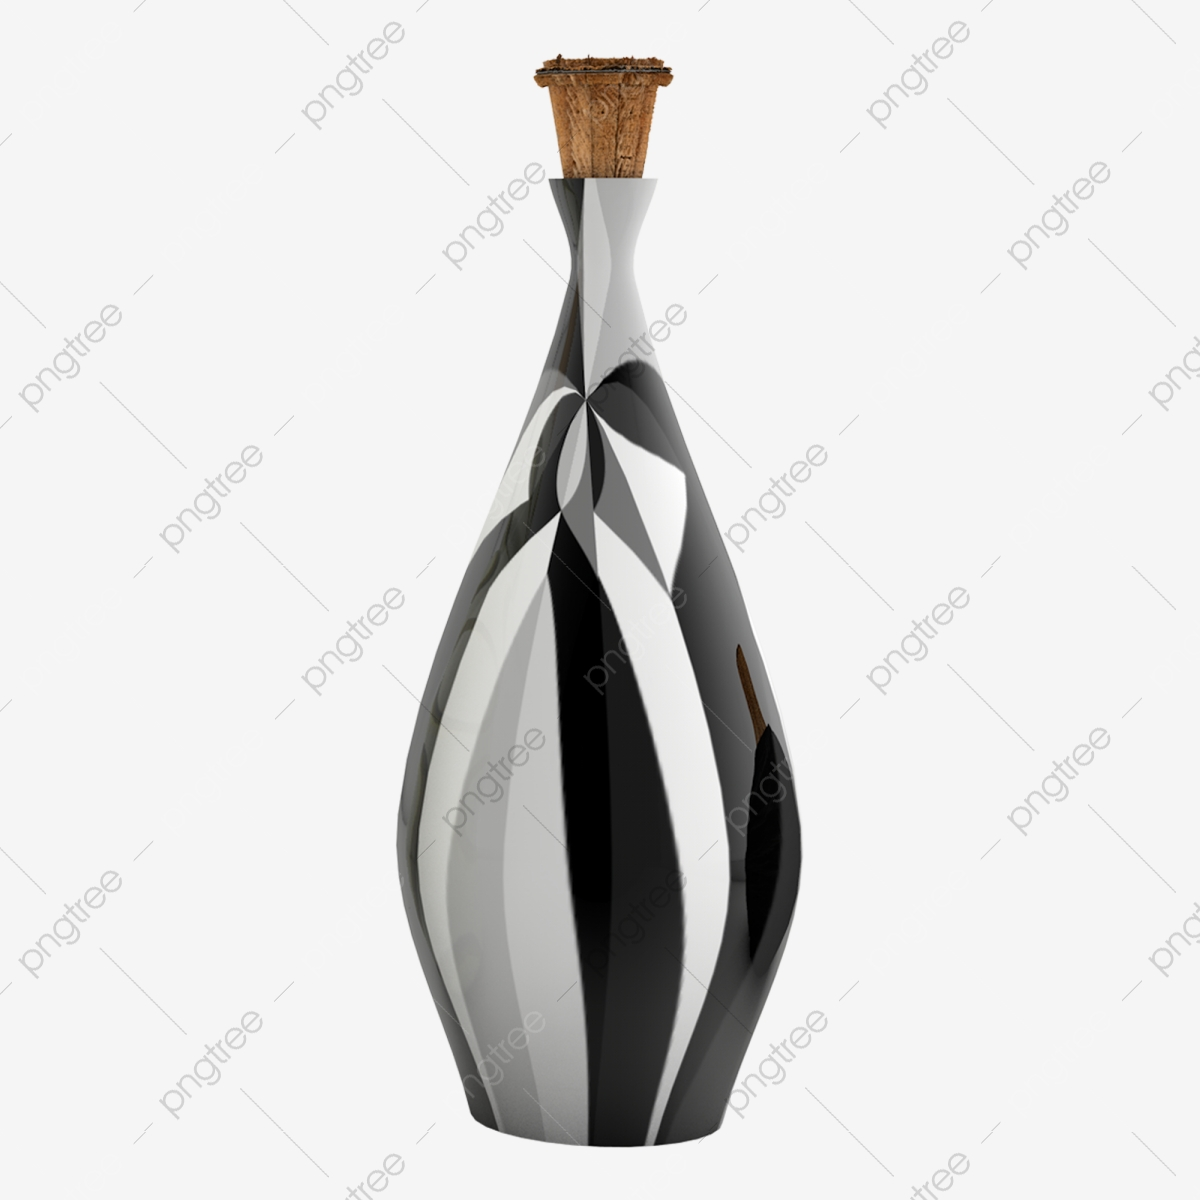 Individuality Pattern Art Decoration Bottle Daily Necessities Black And White Elements Black And White Bottle Art Decoration Decorative Bottle Png Transparent Clipart Image And Psd File For Free Download